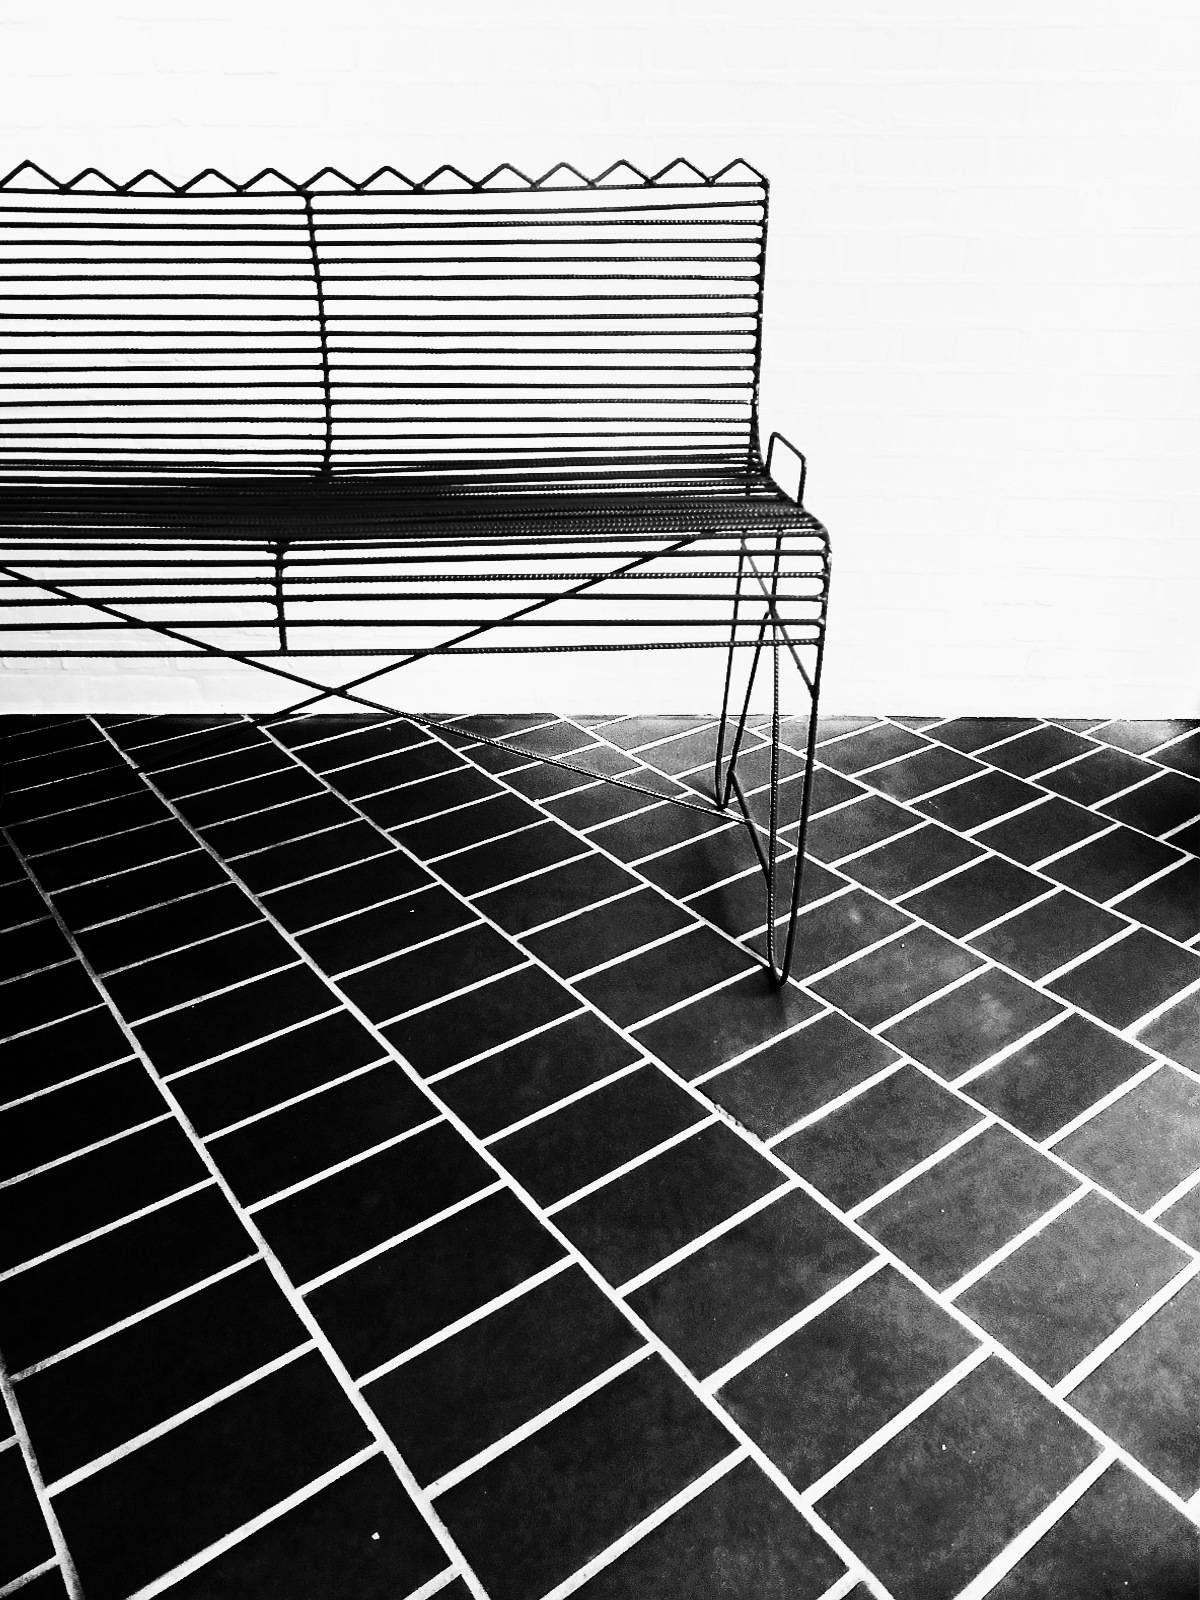 Bench with tiles by Gernot Schwarz